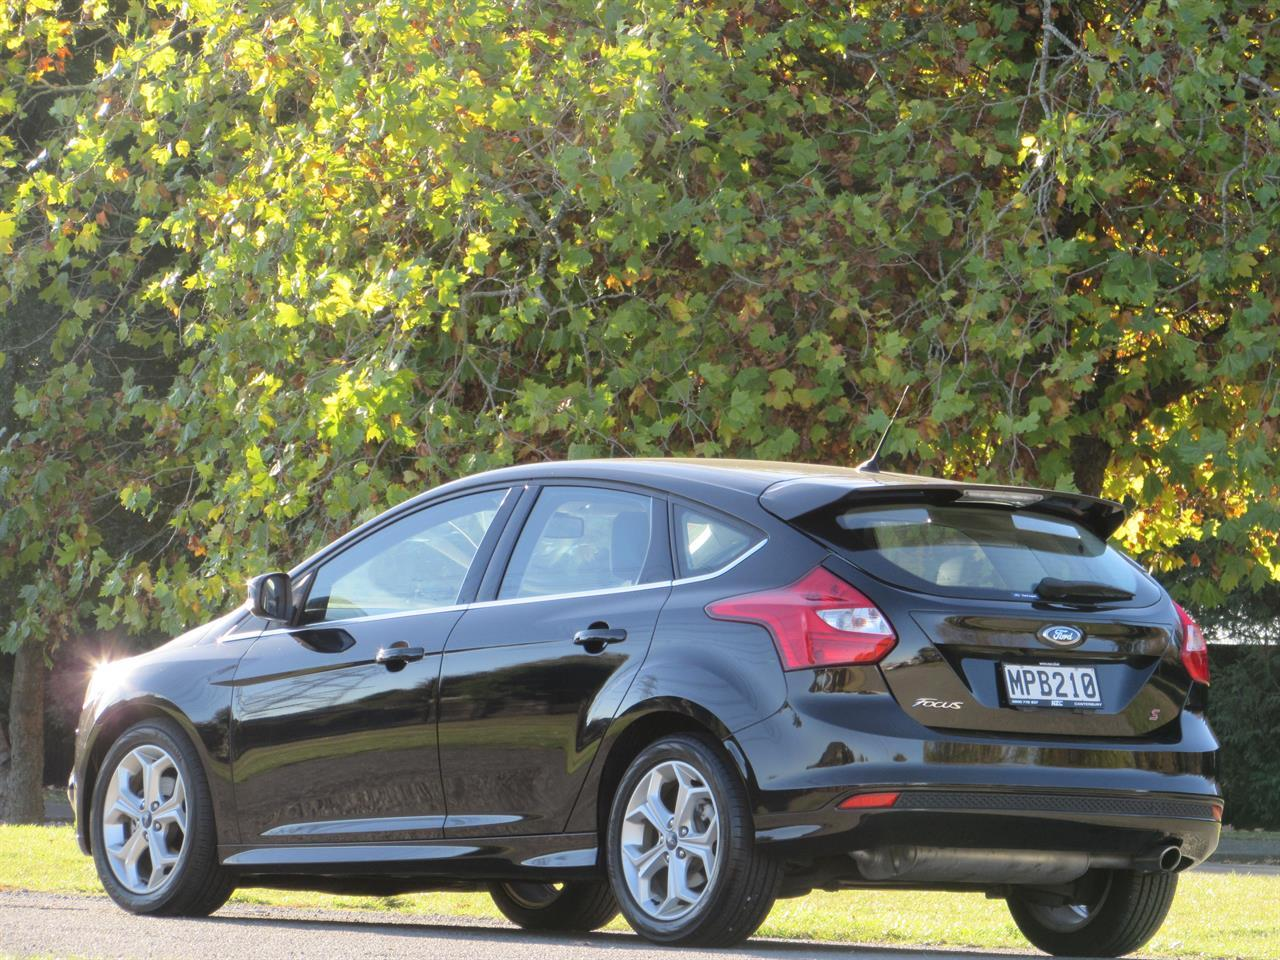 image-3, 2013 Ford Focus at Christchurch